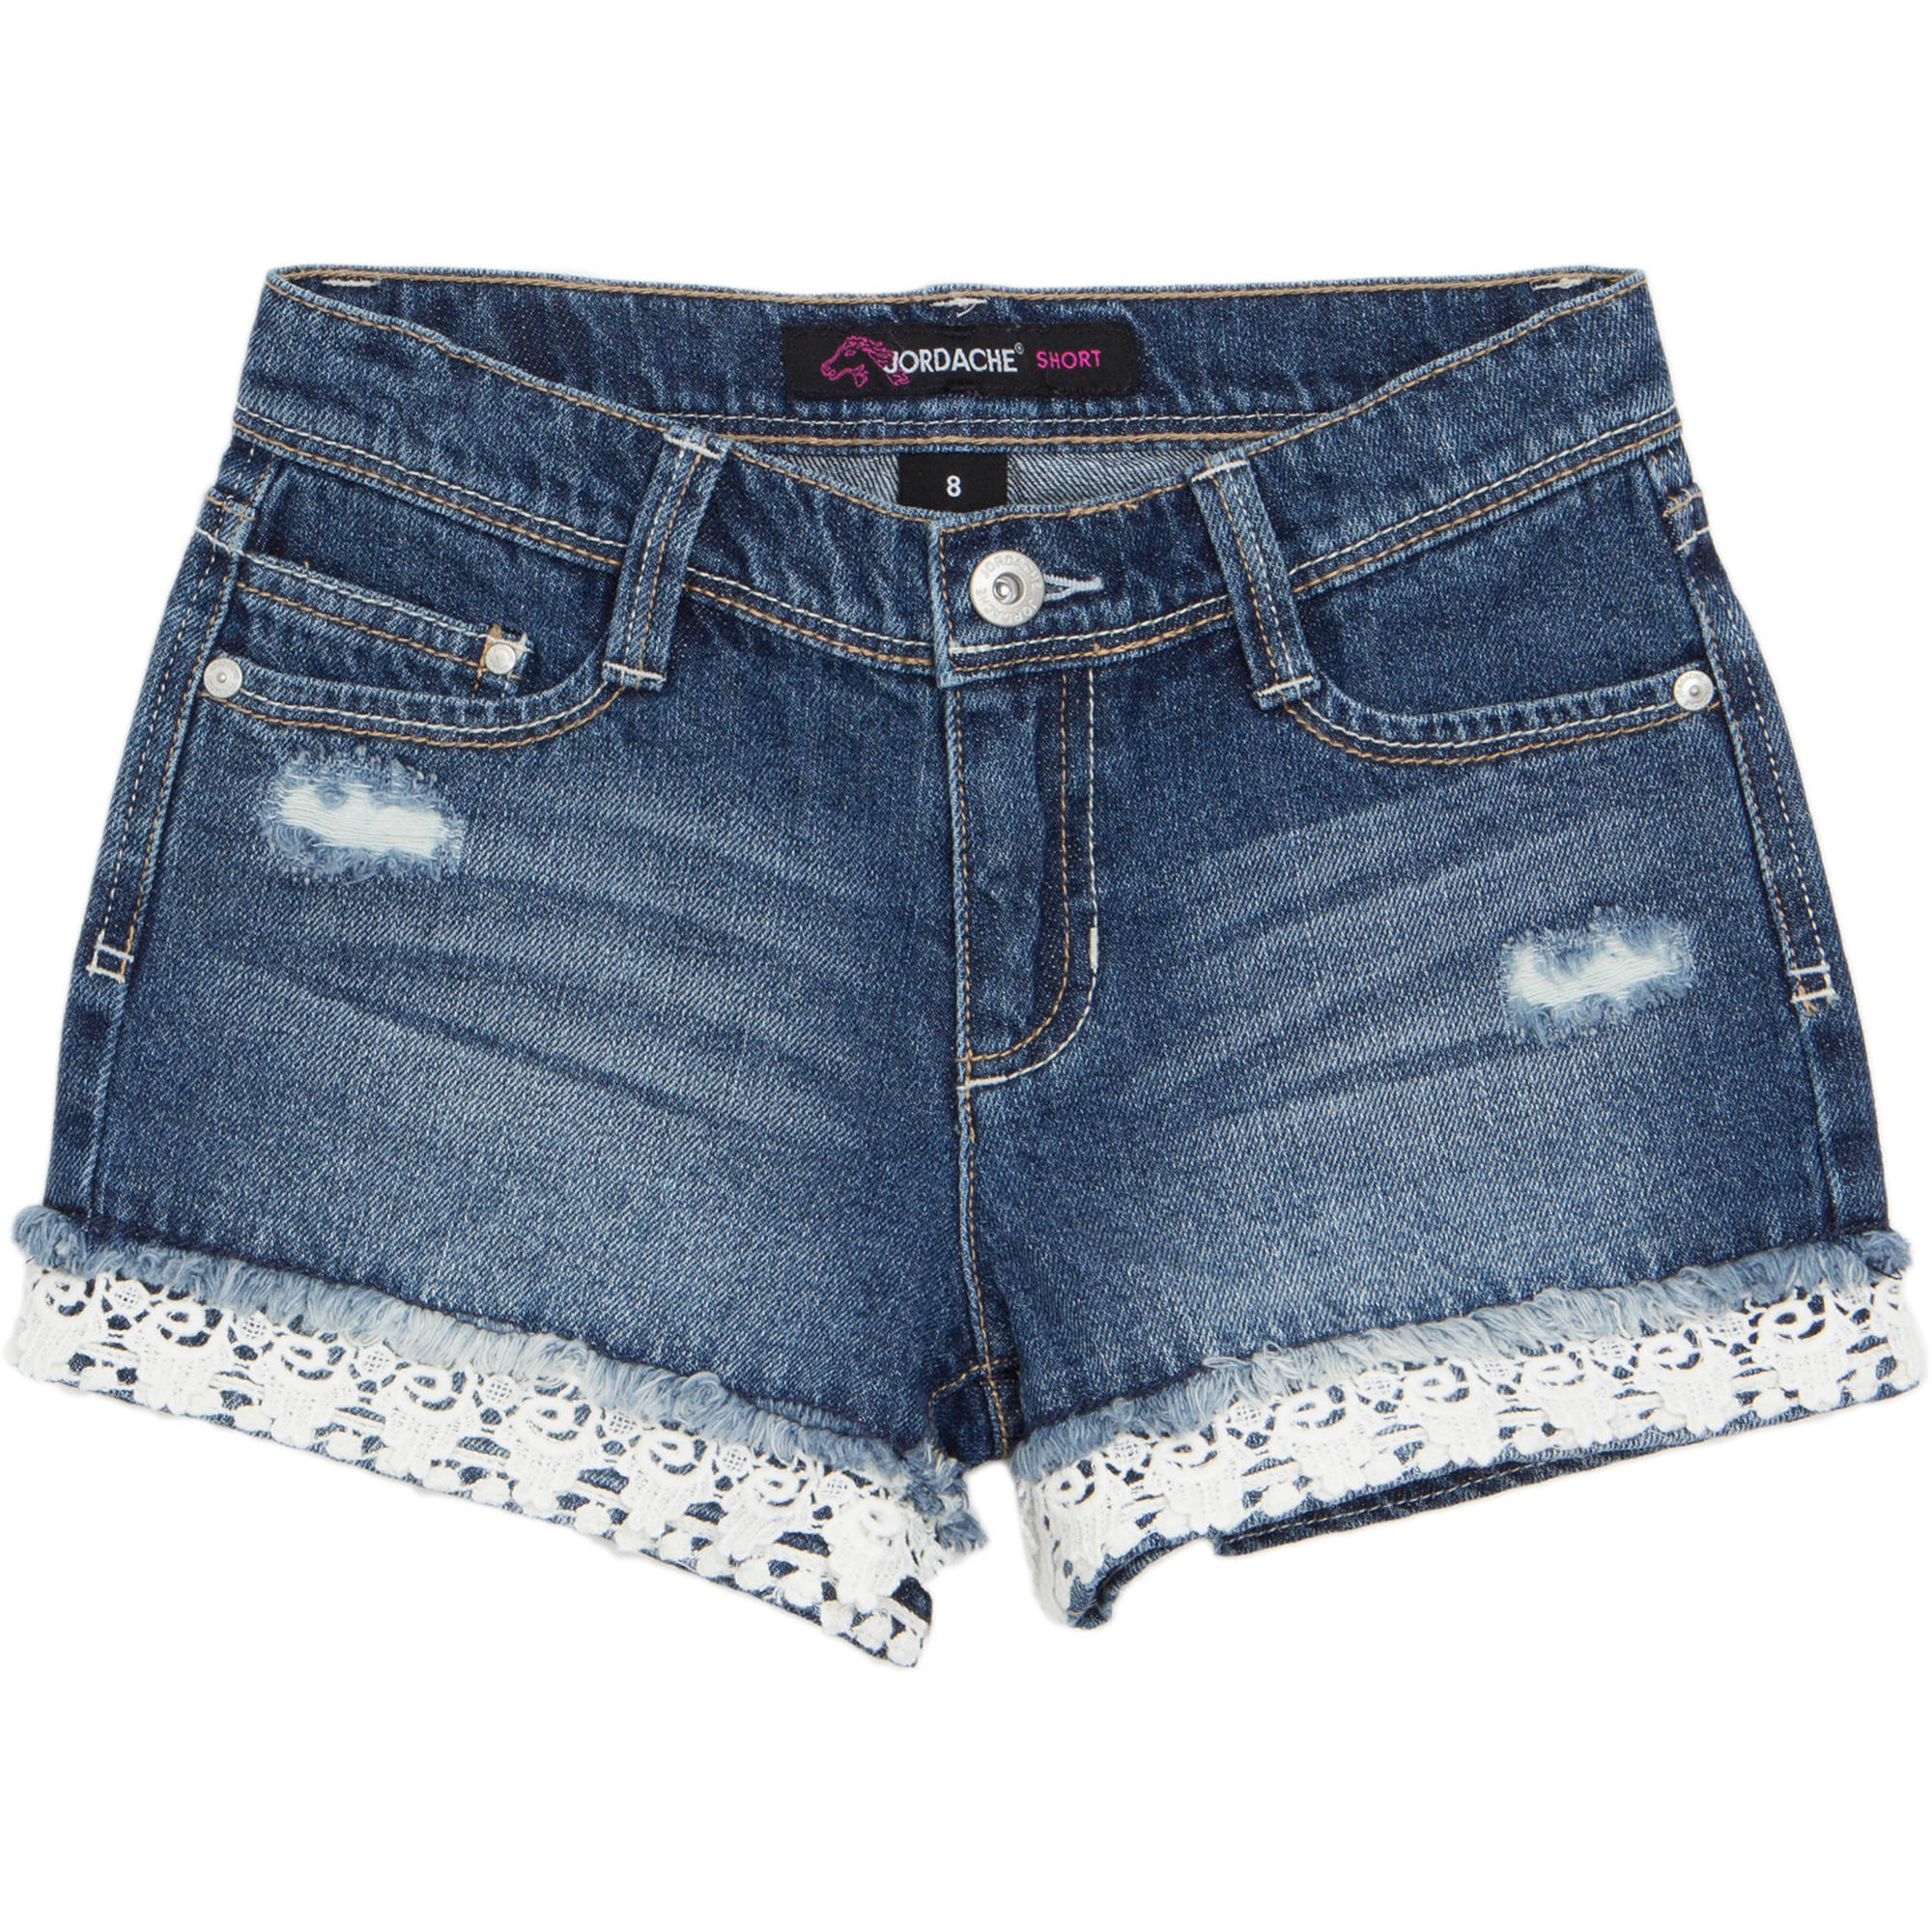 Jordache Girls' Denim Shorts